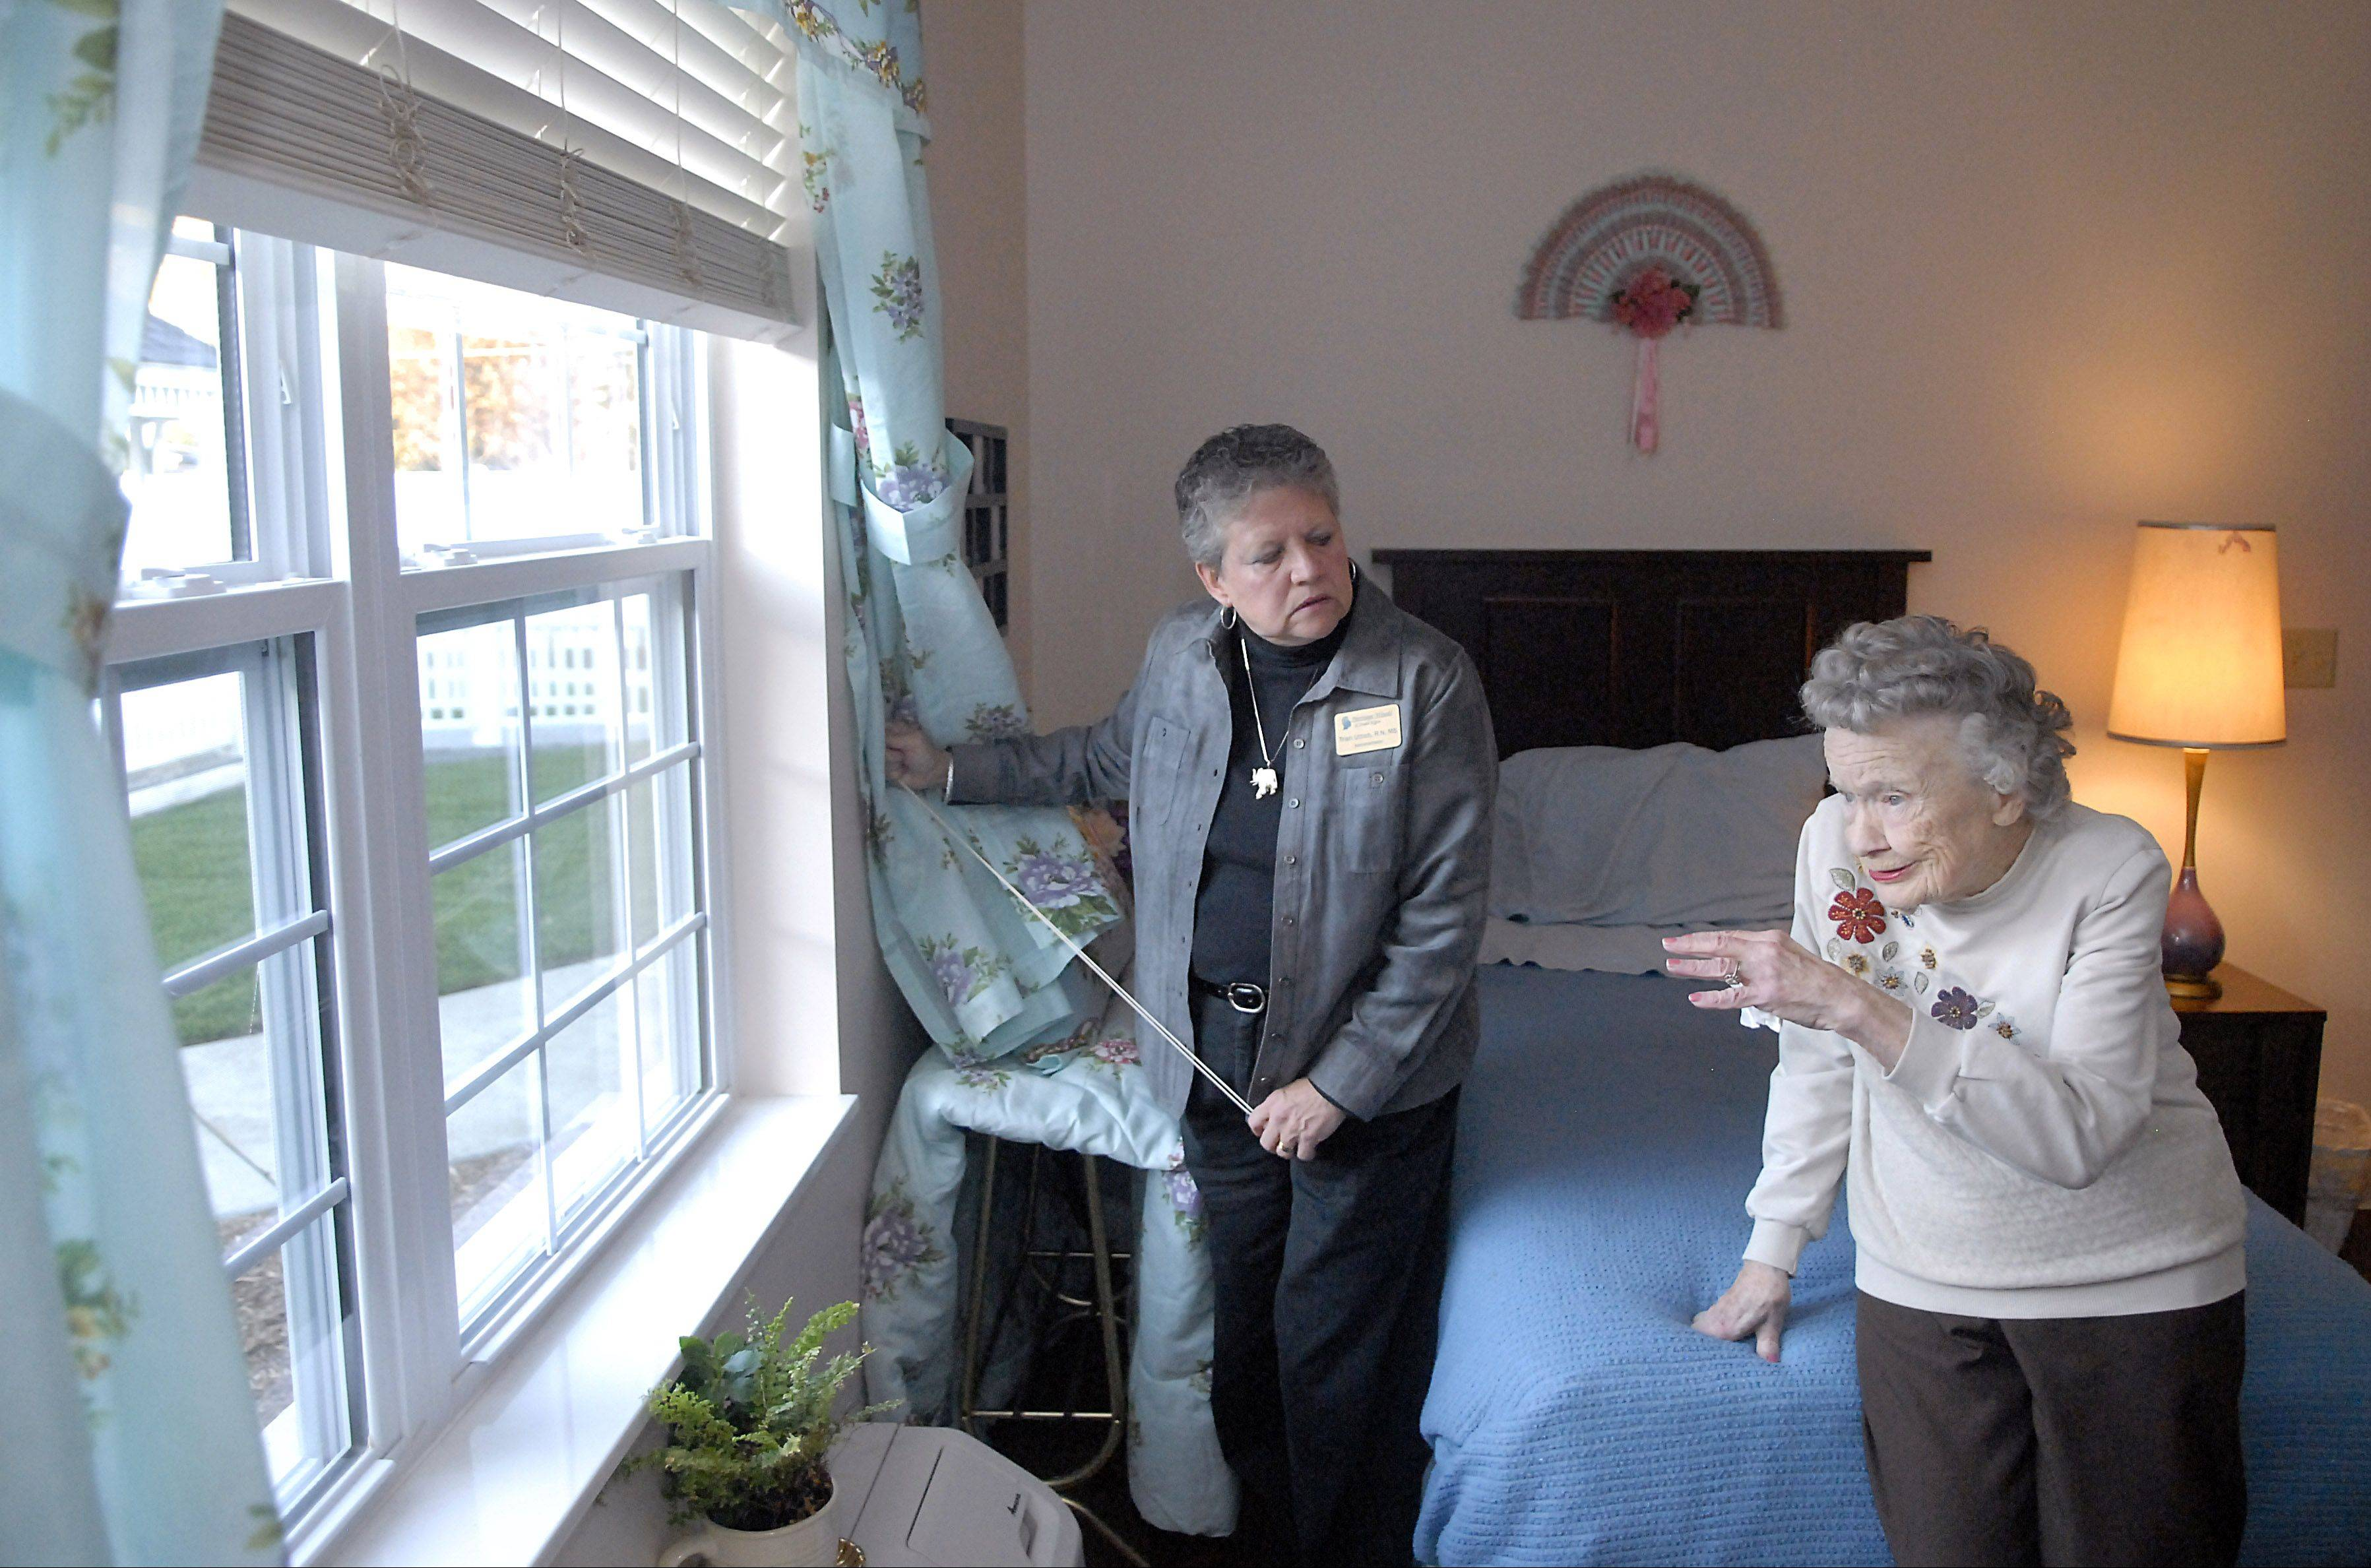 Trish Uttich, White Oaks administrator and registered nurse, listens to resident Almira Behrendt talk about the view from her window at the memory care living facility in South Elgin.